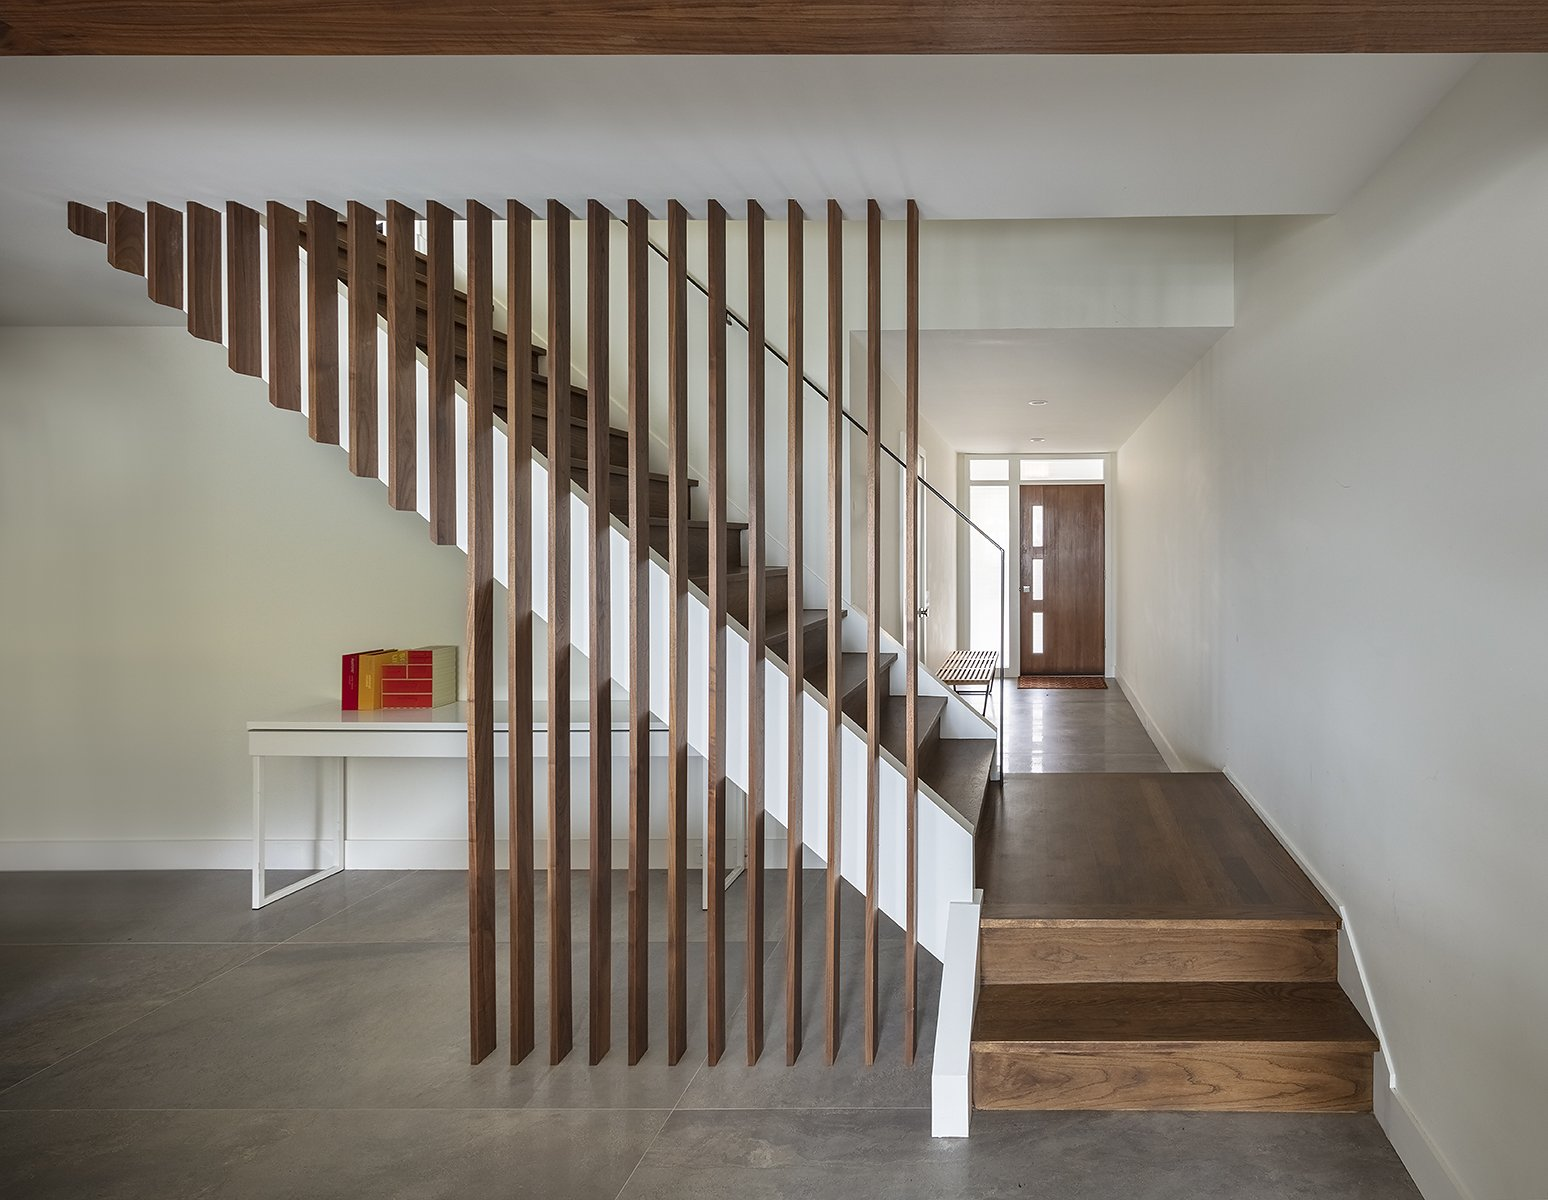 Staircase, Wood Tread, Wood Railing, and Metal Railing Stair  51 Nebraska